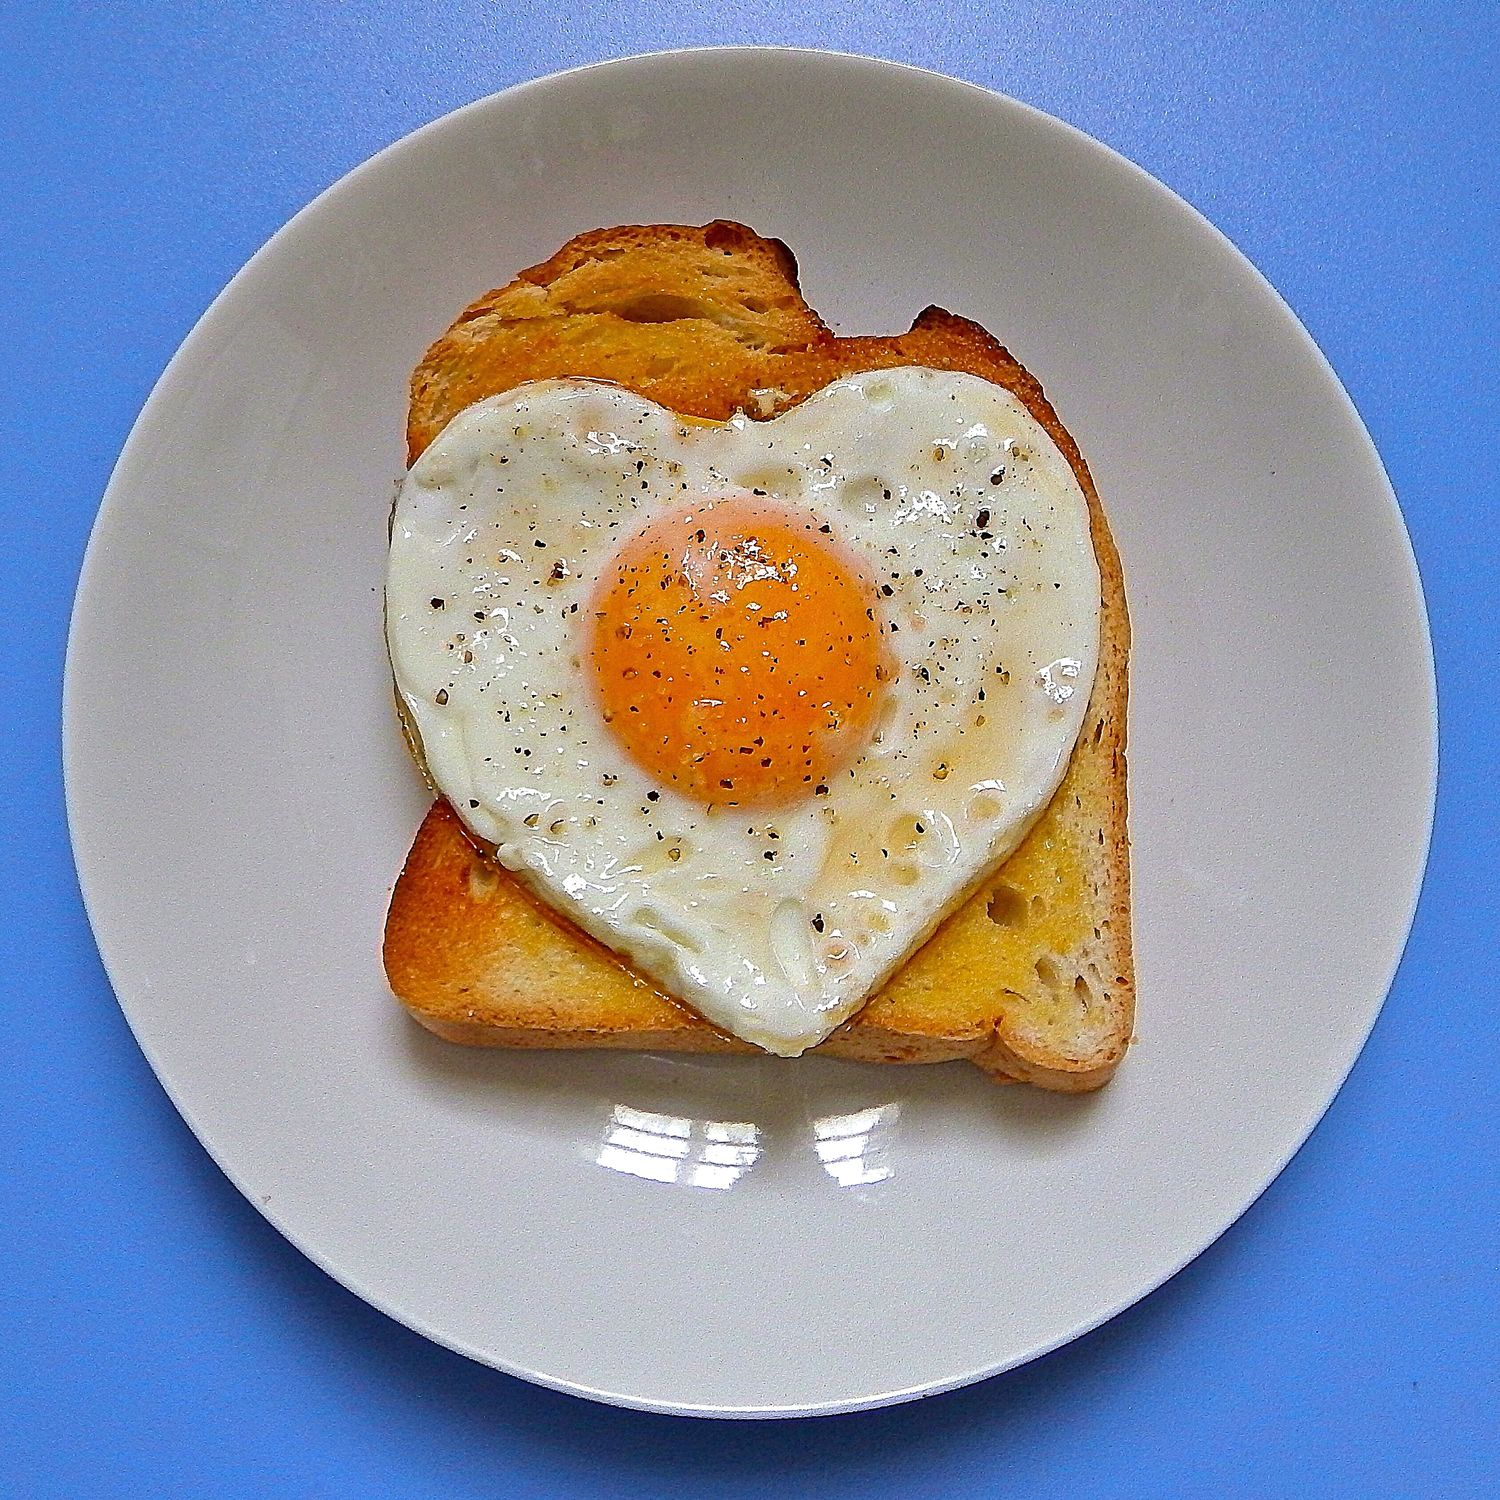 My World Of Food Eggontoast Heart Madewithlove Snack Time! Breakfast Food Egg Shapes I experimented with some shapes! 😃